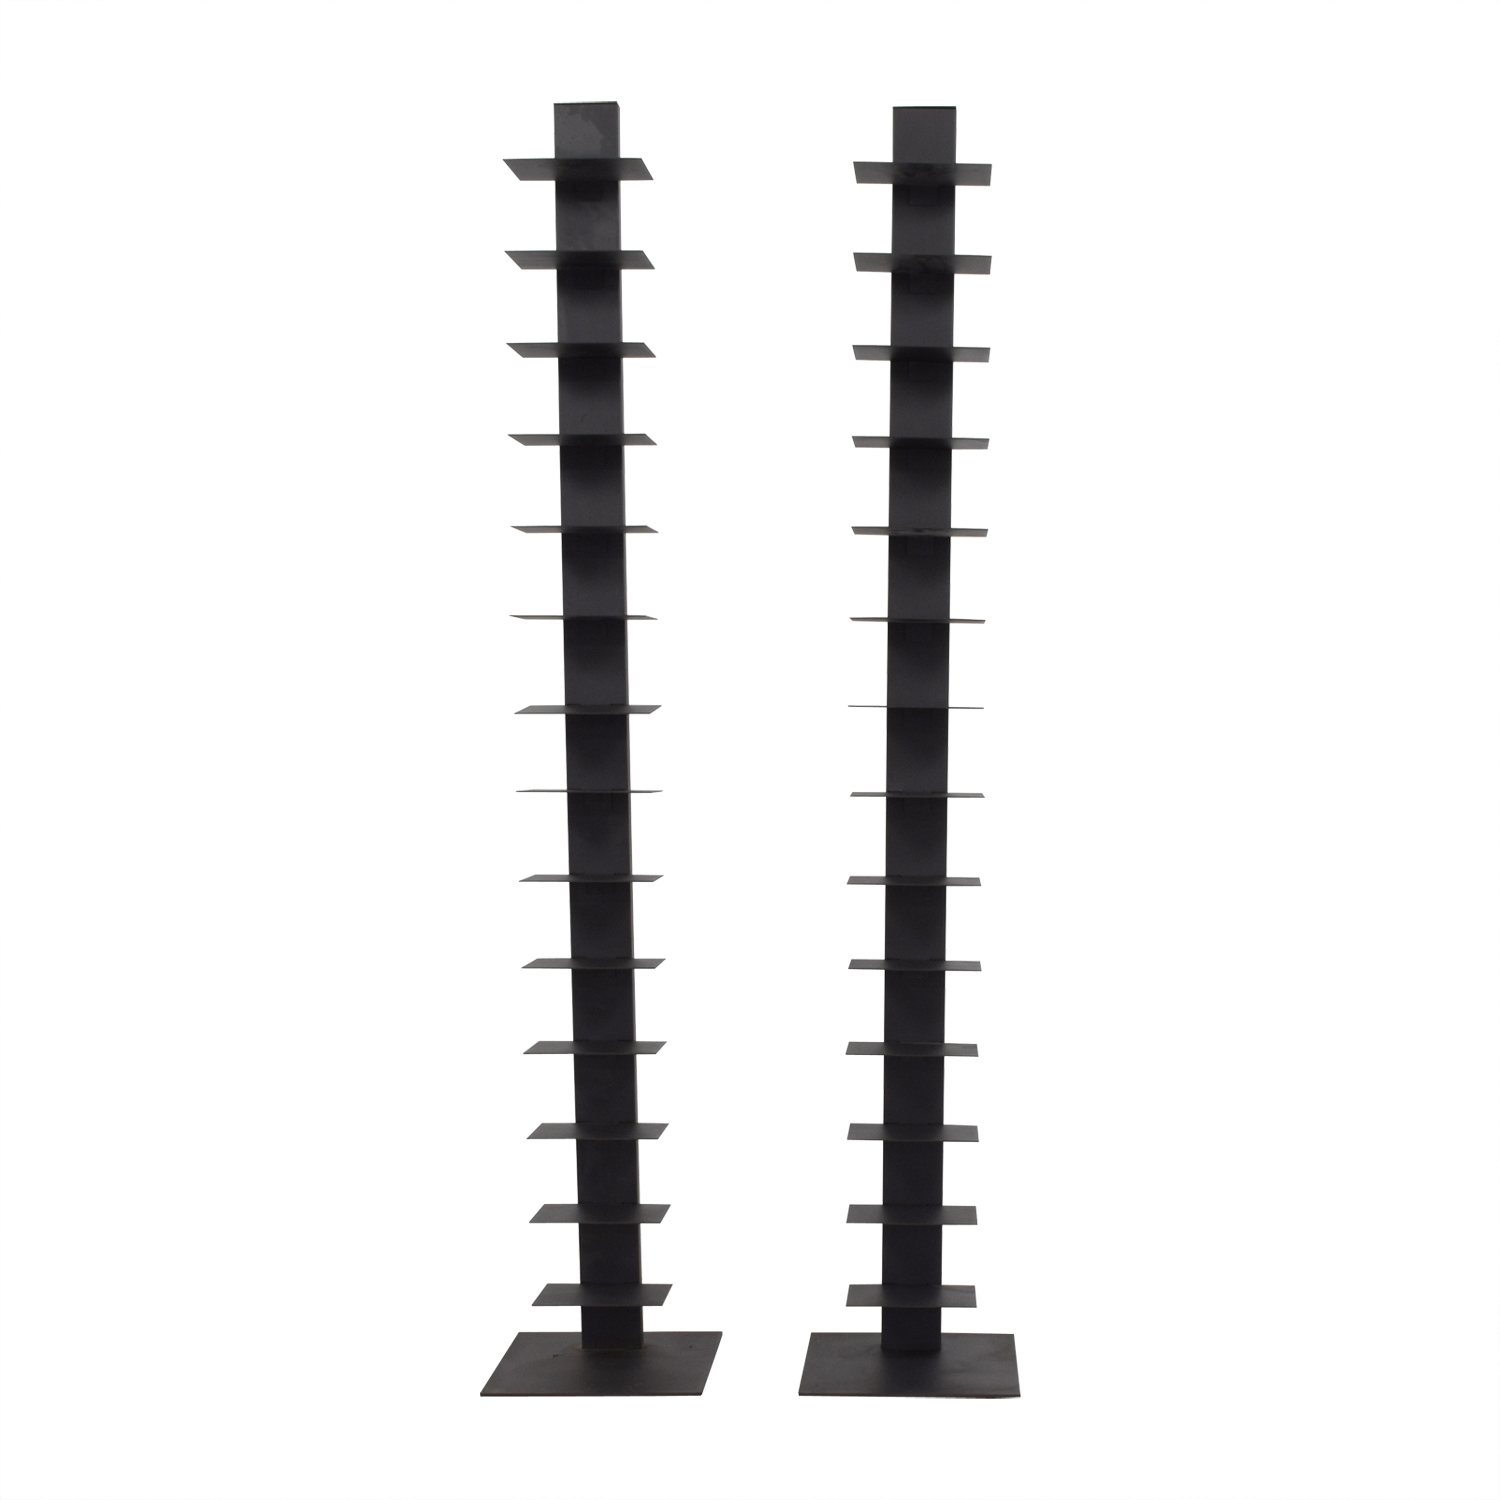 Sapian Sapian Black Metal Bookshelves dimensions